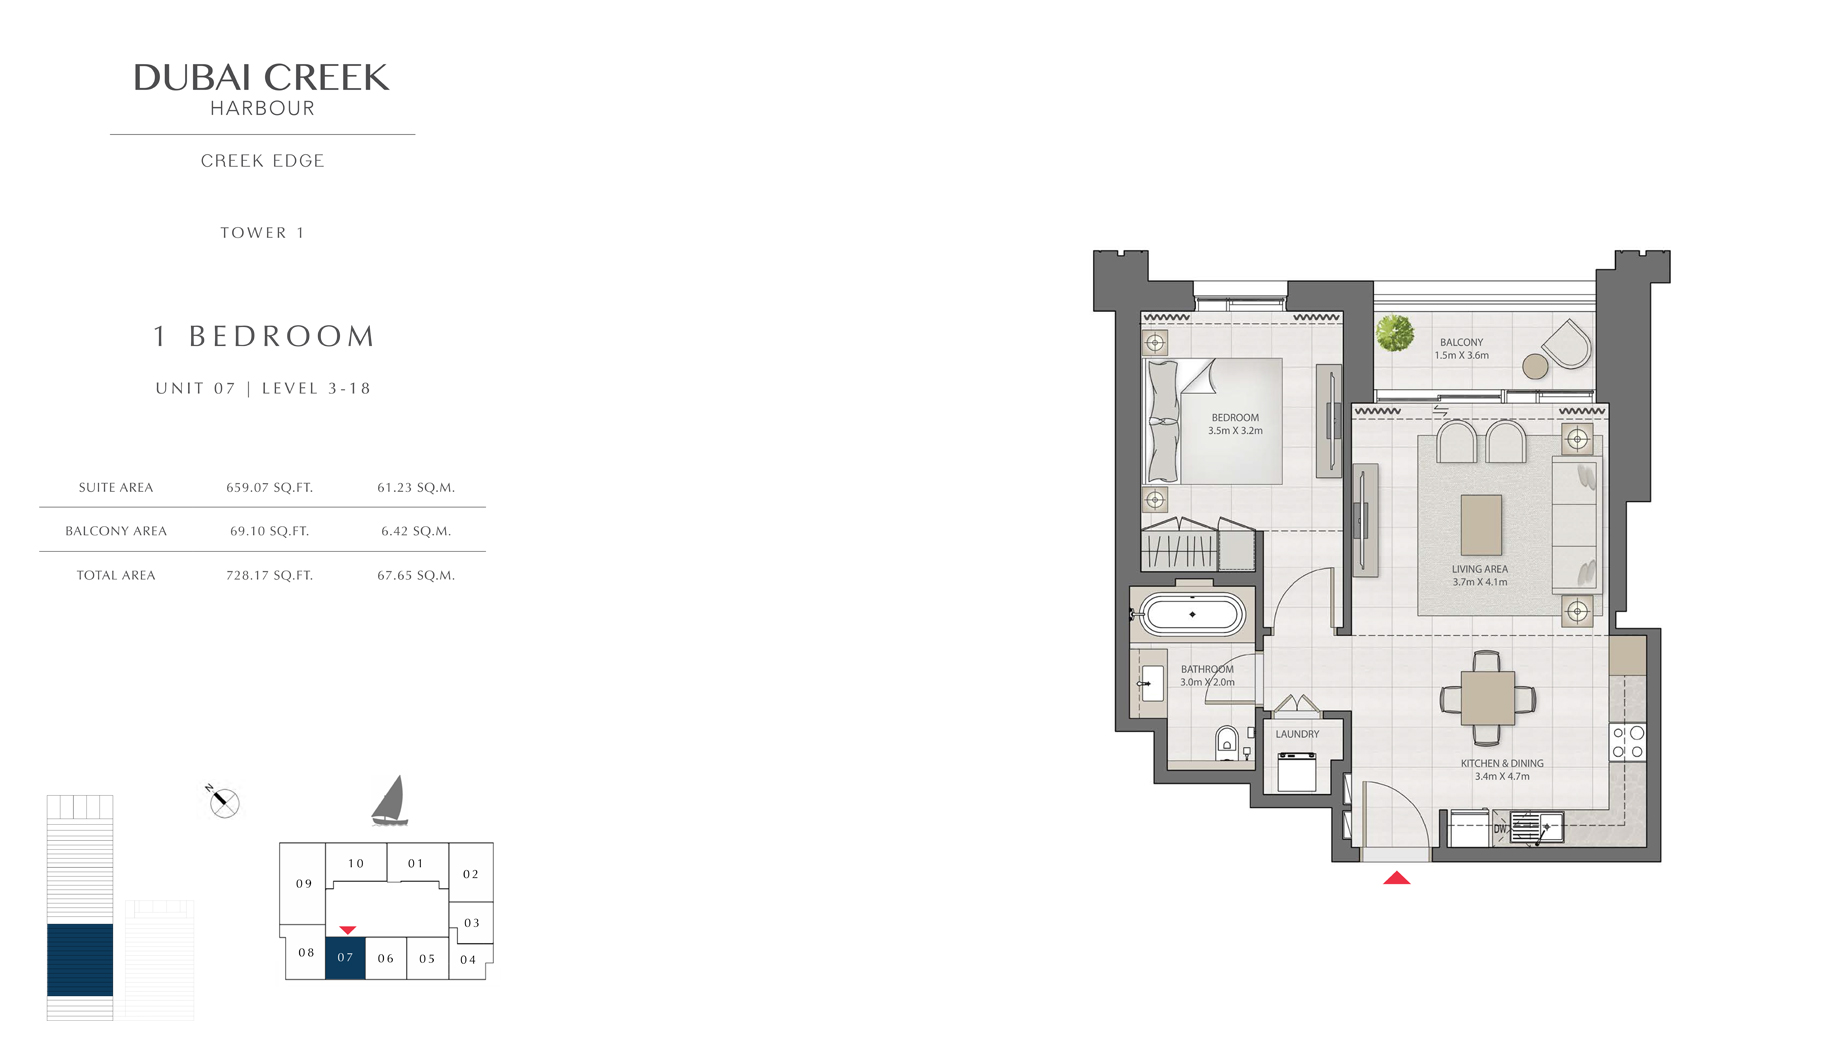 1 Bedroom Tower 1 Unit 07 Level 3-18  Size 728 sq.ft